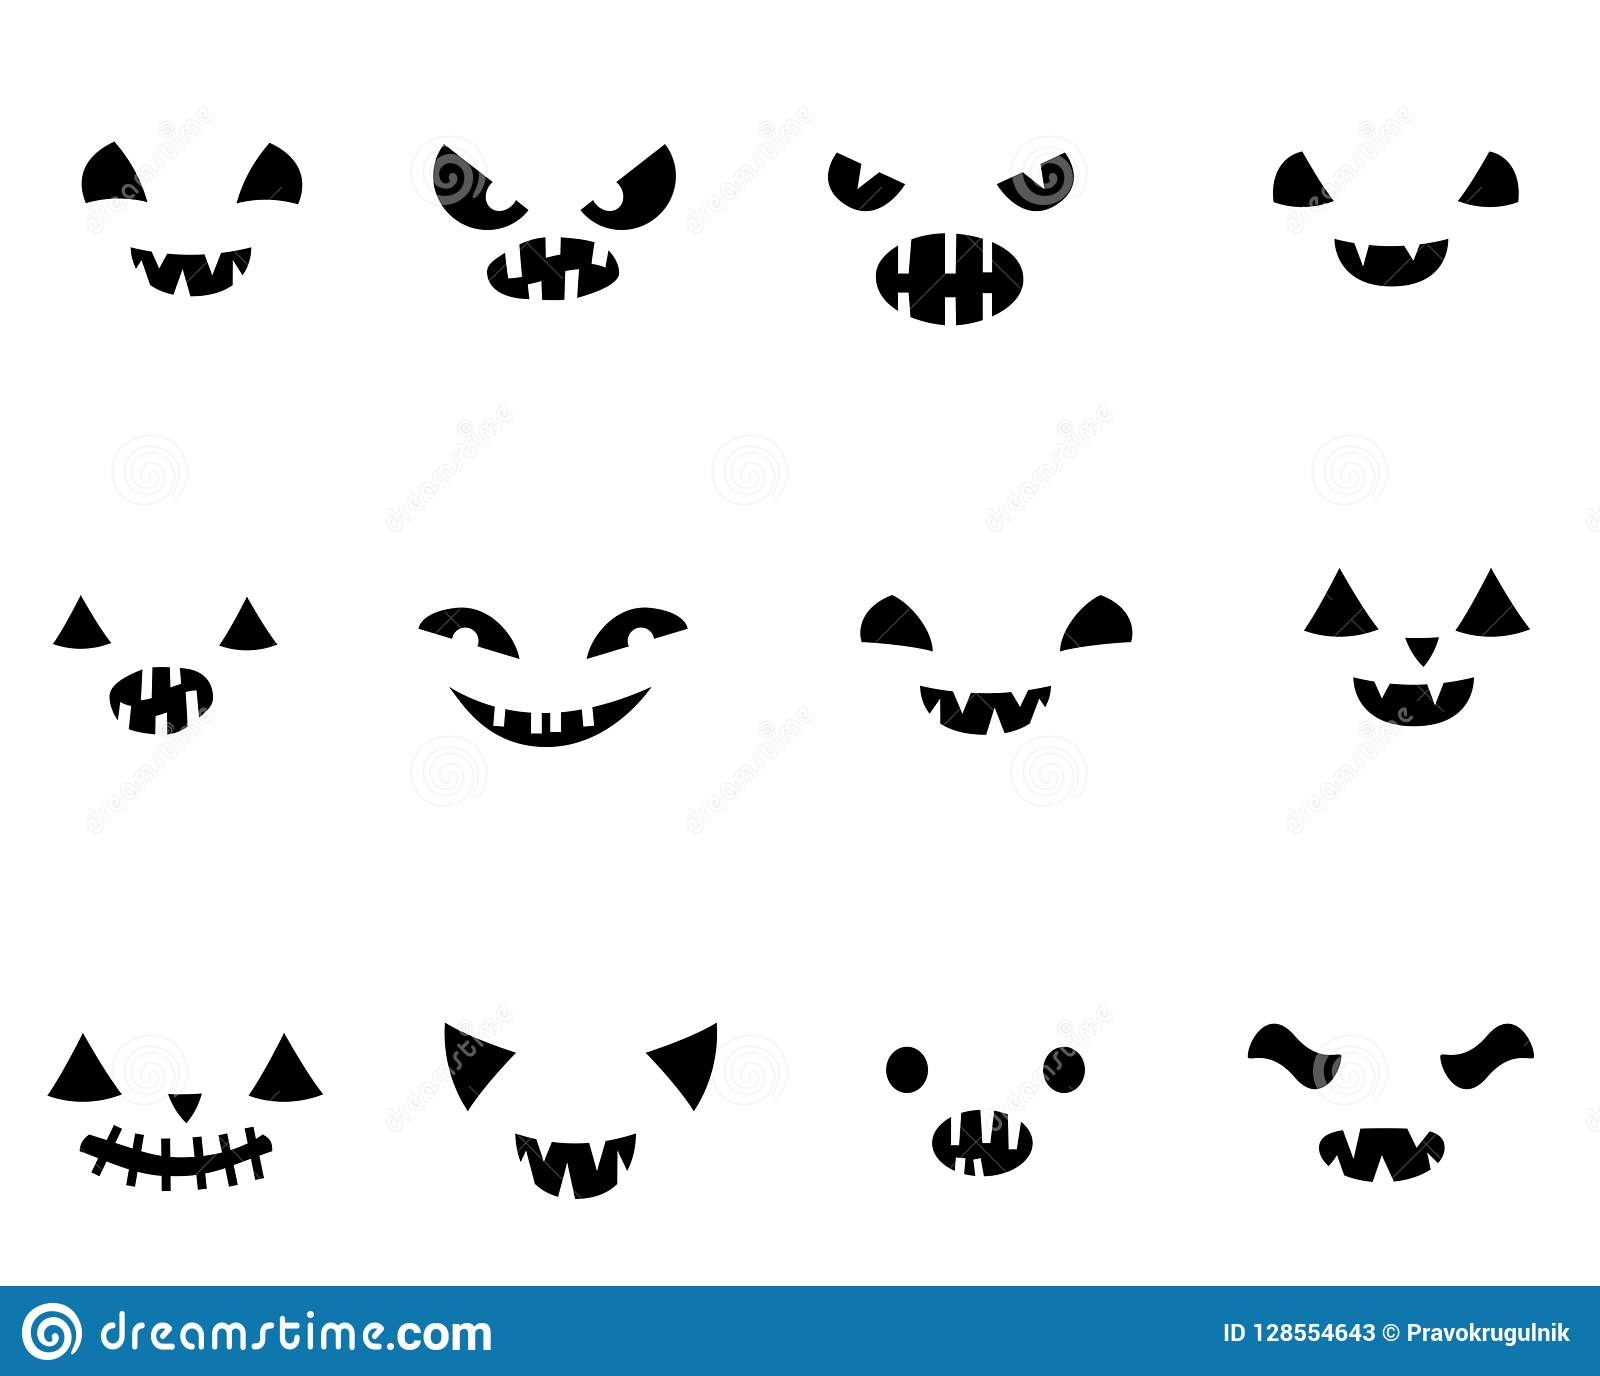 Pumpkin Faces Templates | Vector Set With Carved Halloween Pumpkin Faces Stock Vector